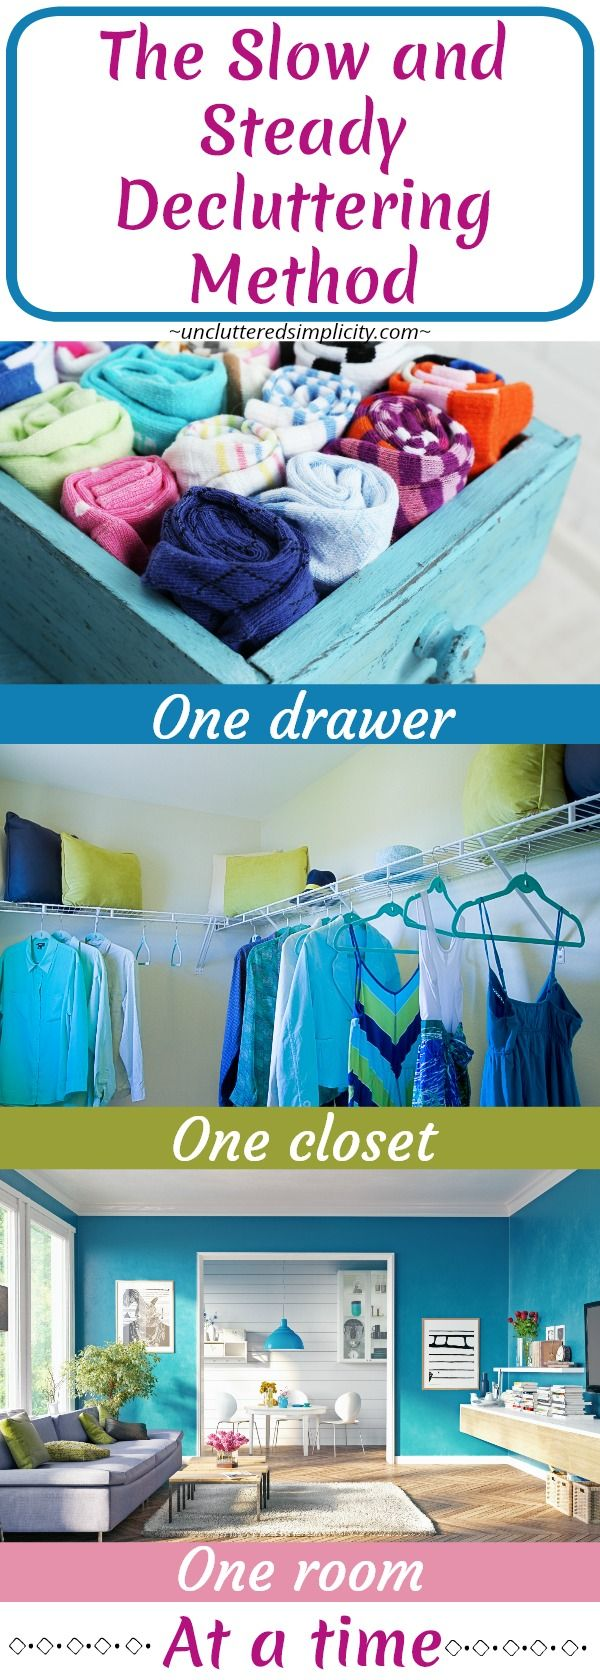 how to declutter your home | decluttering methods | clutter-free home | declutter and organize